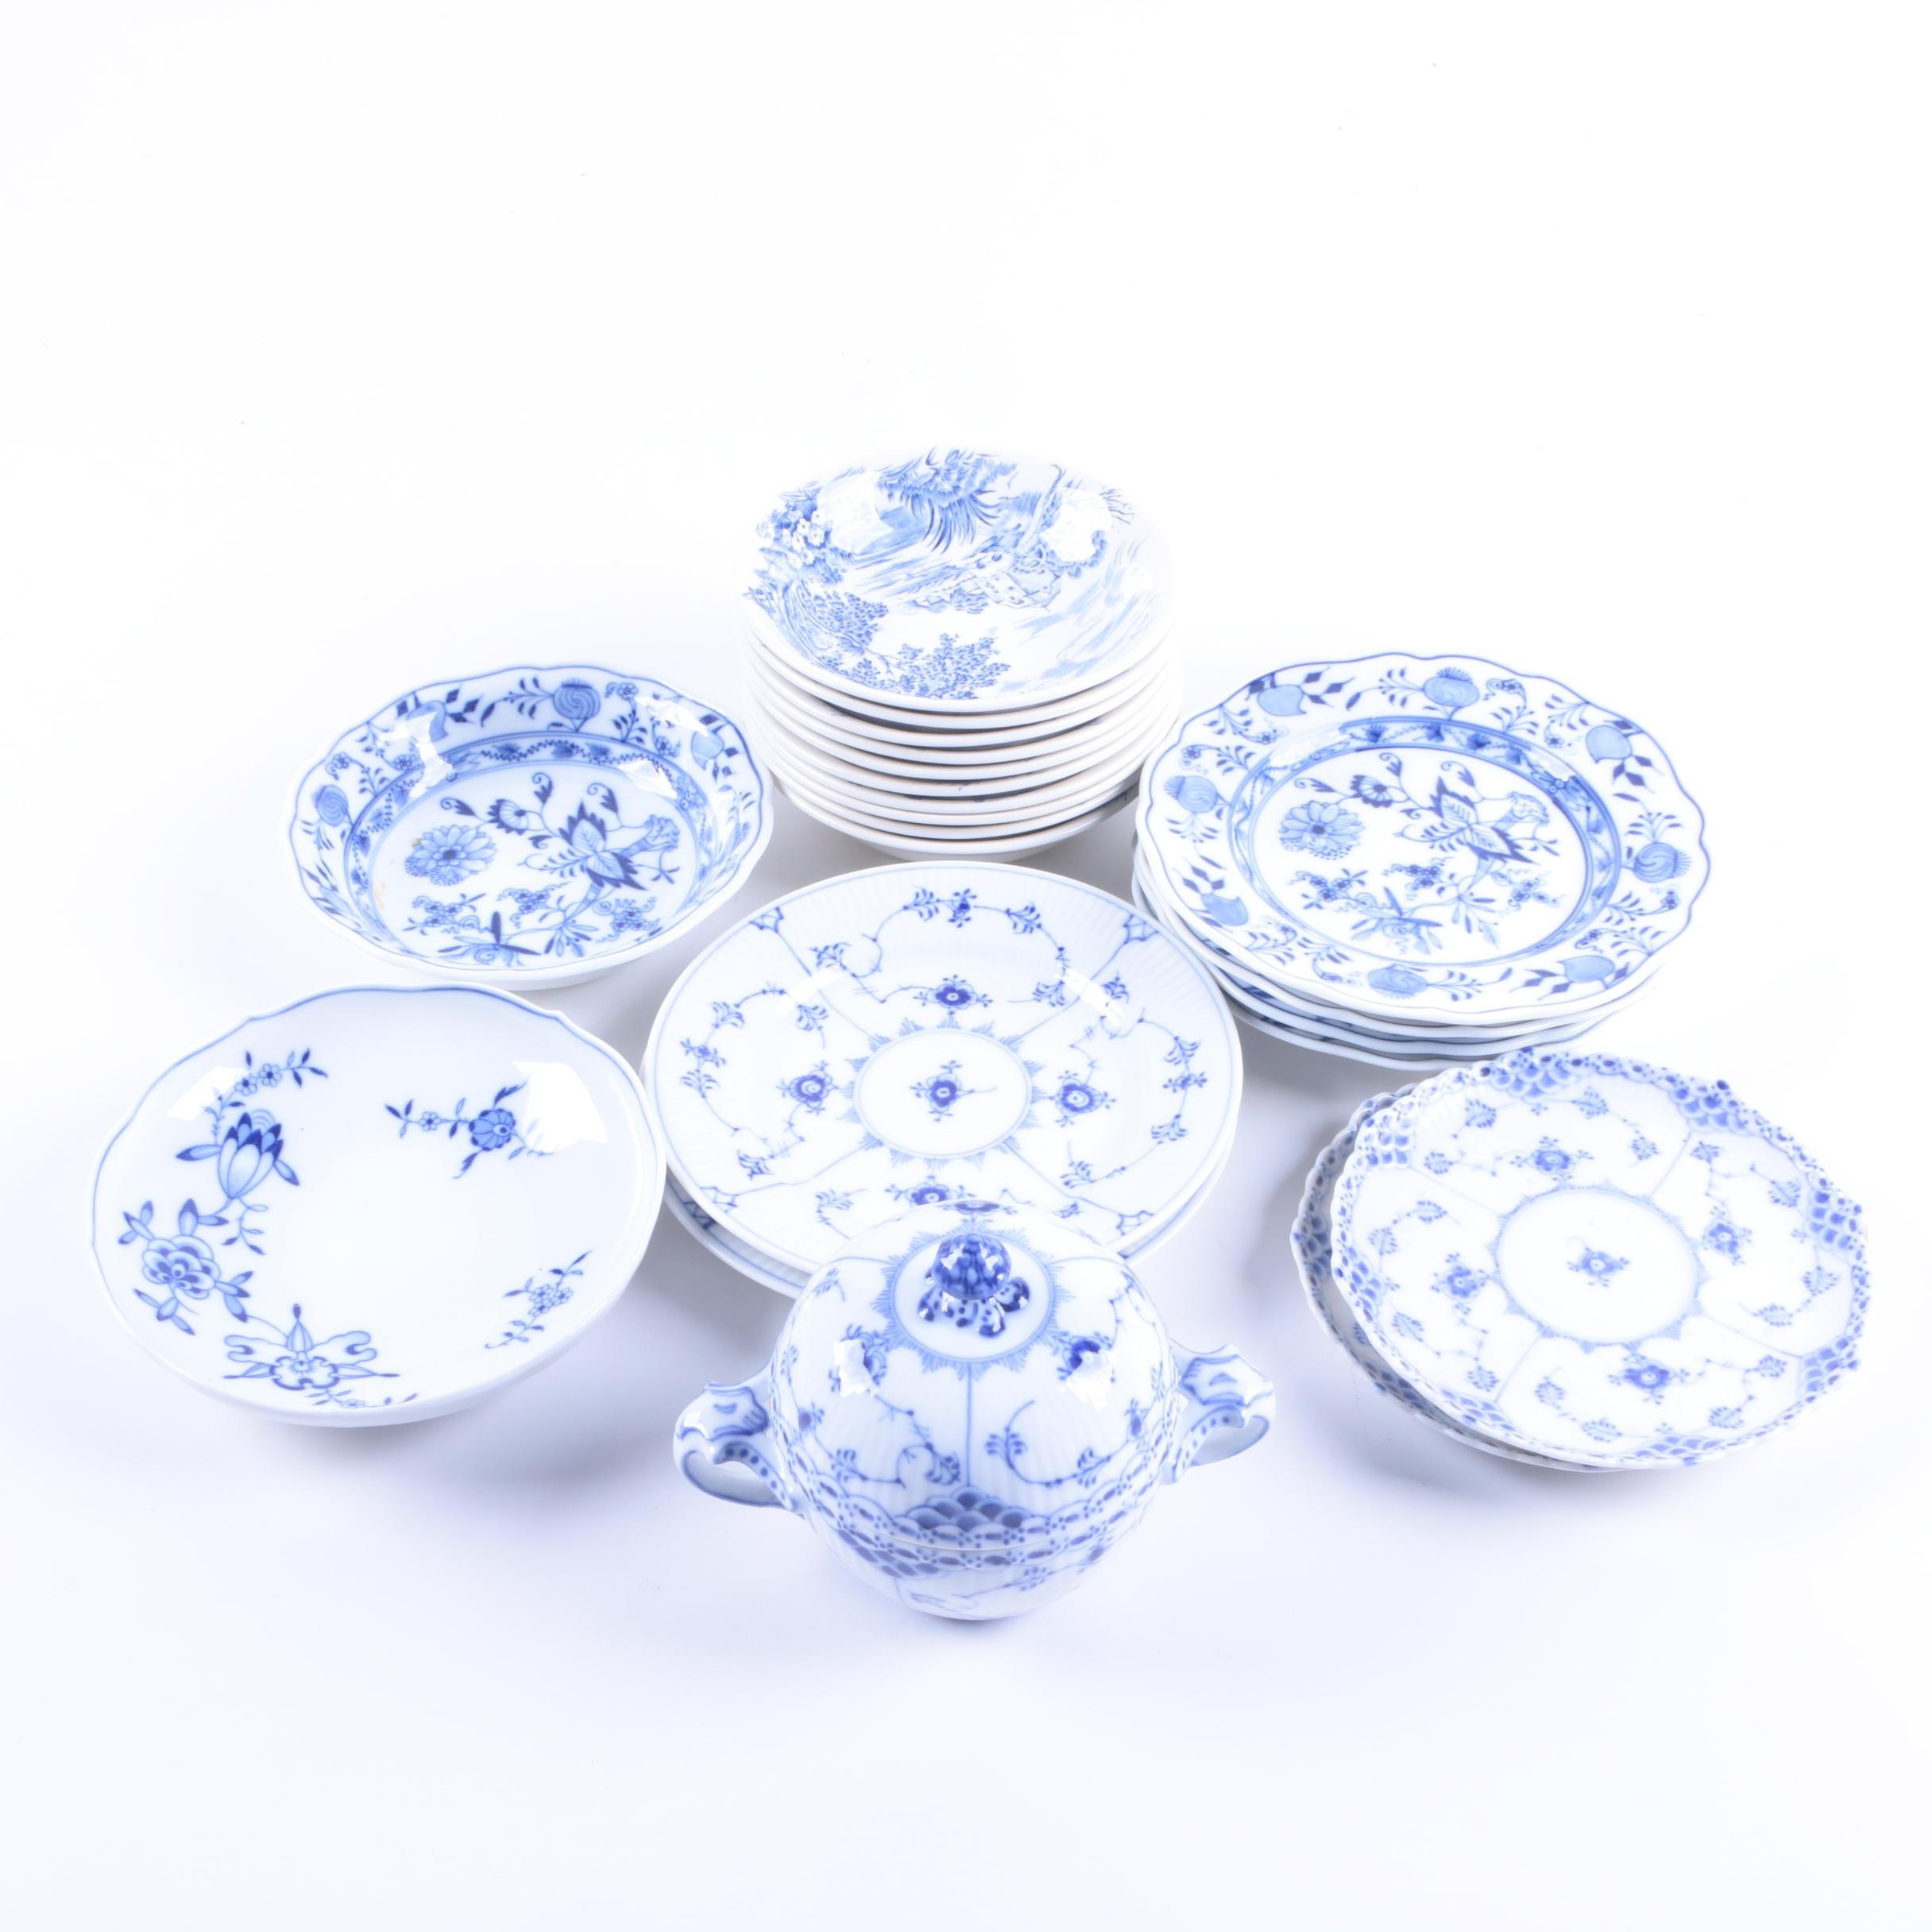 Vintage Blue Patterned Dinnerware Including Wedgwood and Meissen ...  sc 1 st  EBTH.com & Vintage Blue Patterned Dinnerware Including Wedgwood and Meissen : EBTH